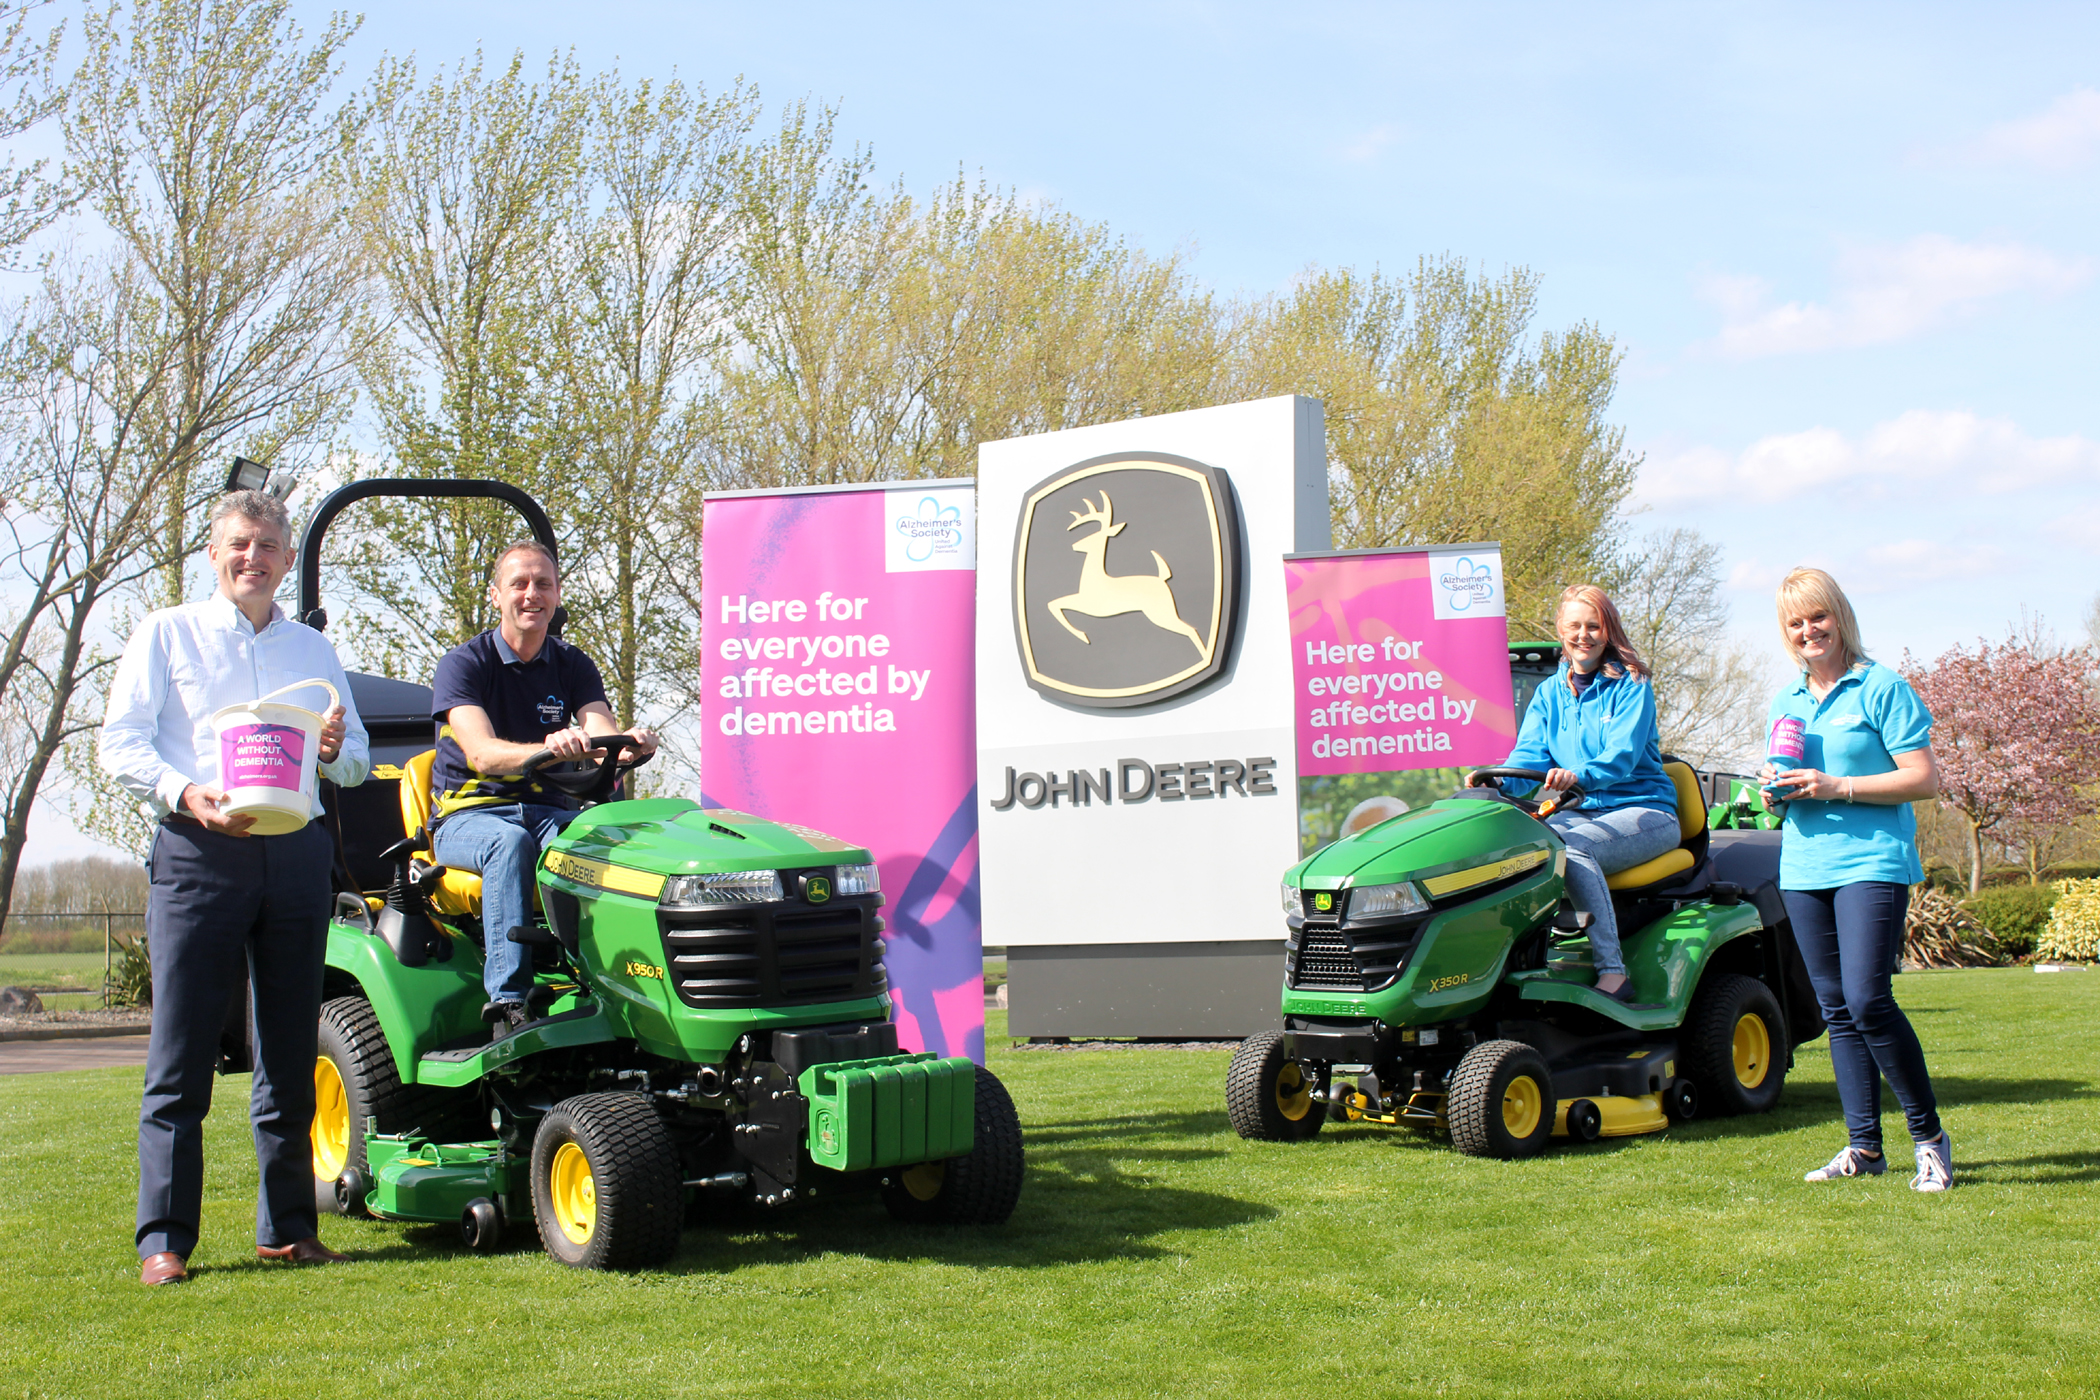 (Left to right): John Deere Limited turf division manager Chris Meacock, Andy and Kathryn Maxfield, and Alzheimer's Society regional community fundraising officer Sue Swire.